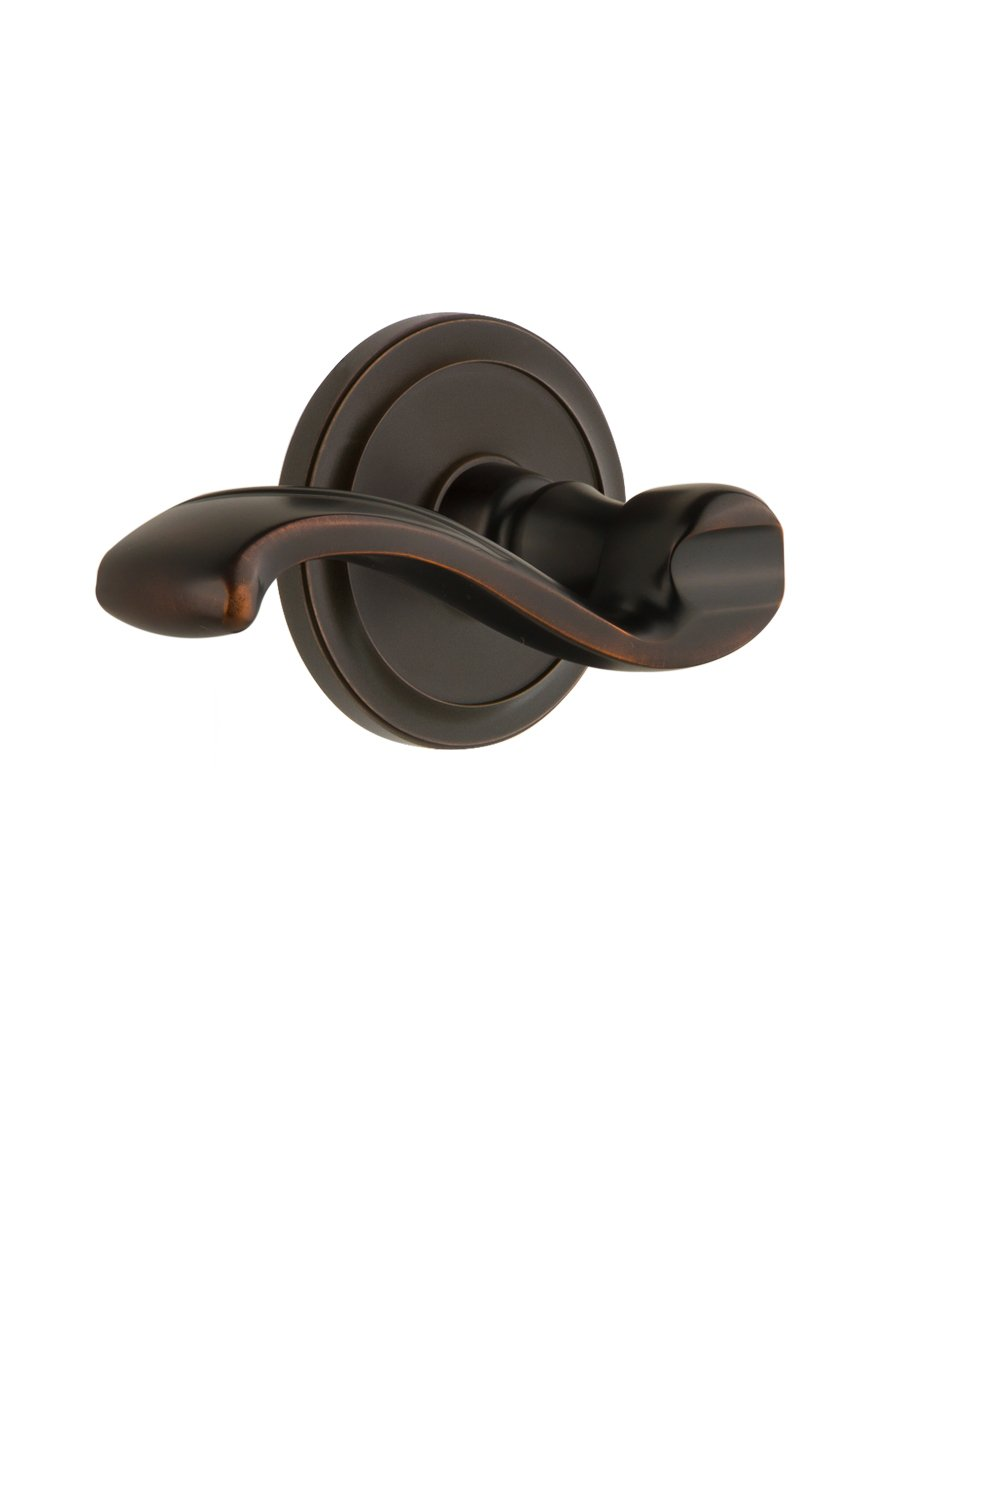 Grandeur 810524 Circulaire Rosette Double Dummy with Portofino Lever in Polished Nickel